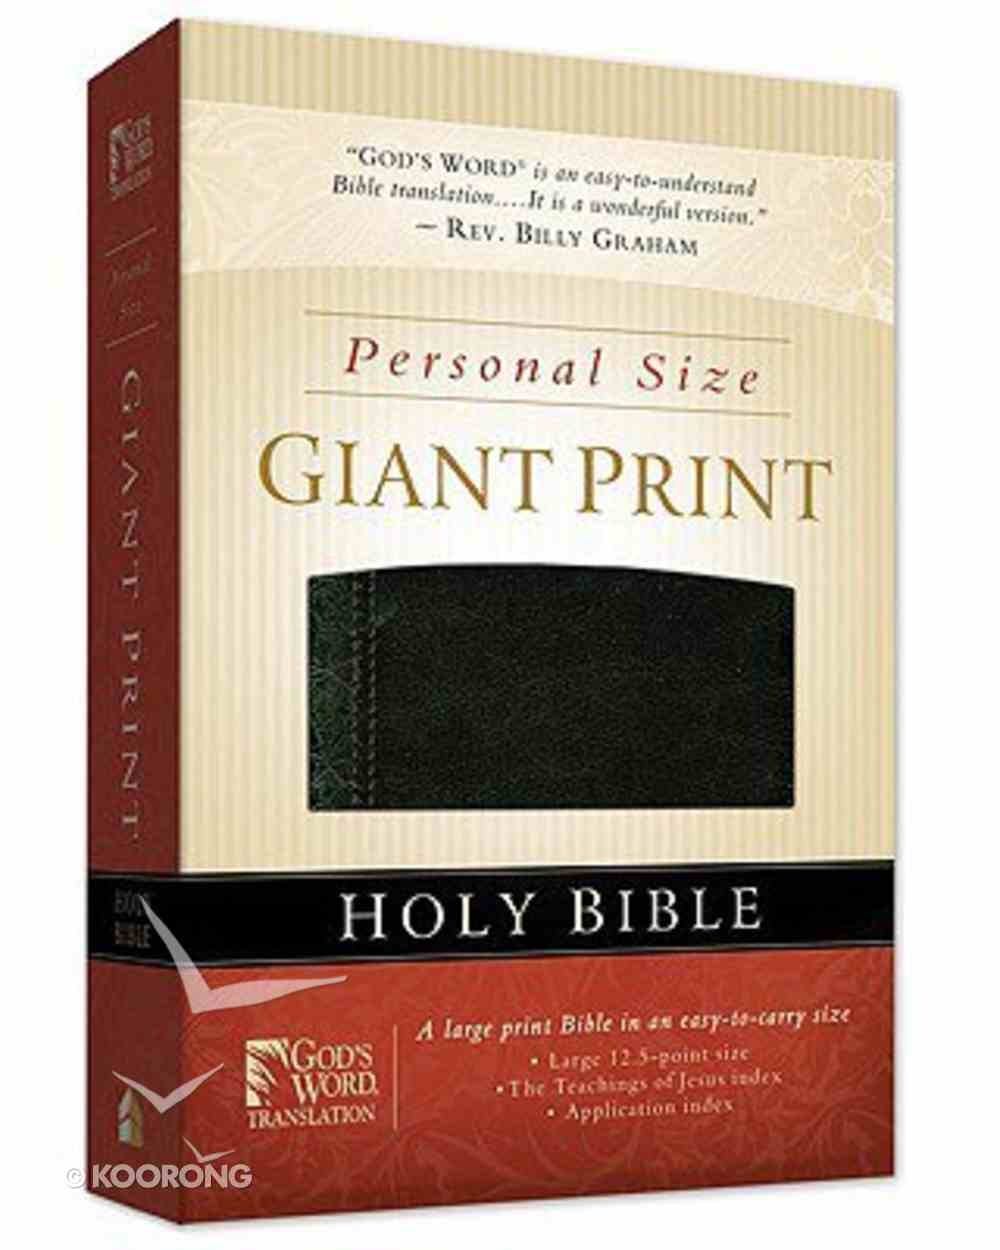 God's Word Personal Size Giant Print Black Duravella Imitation Leather